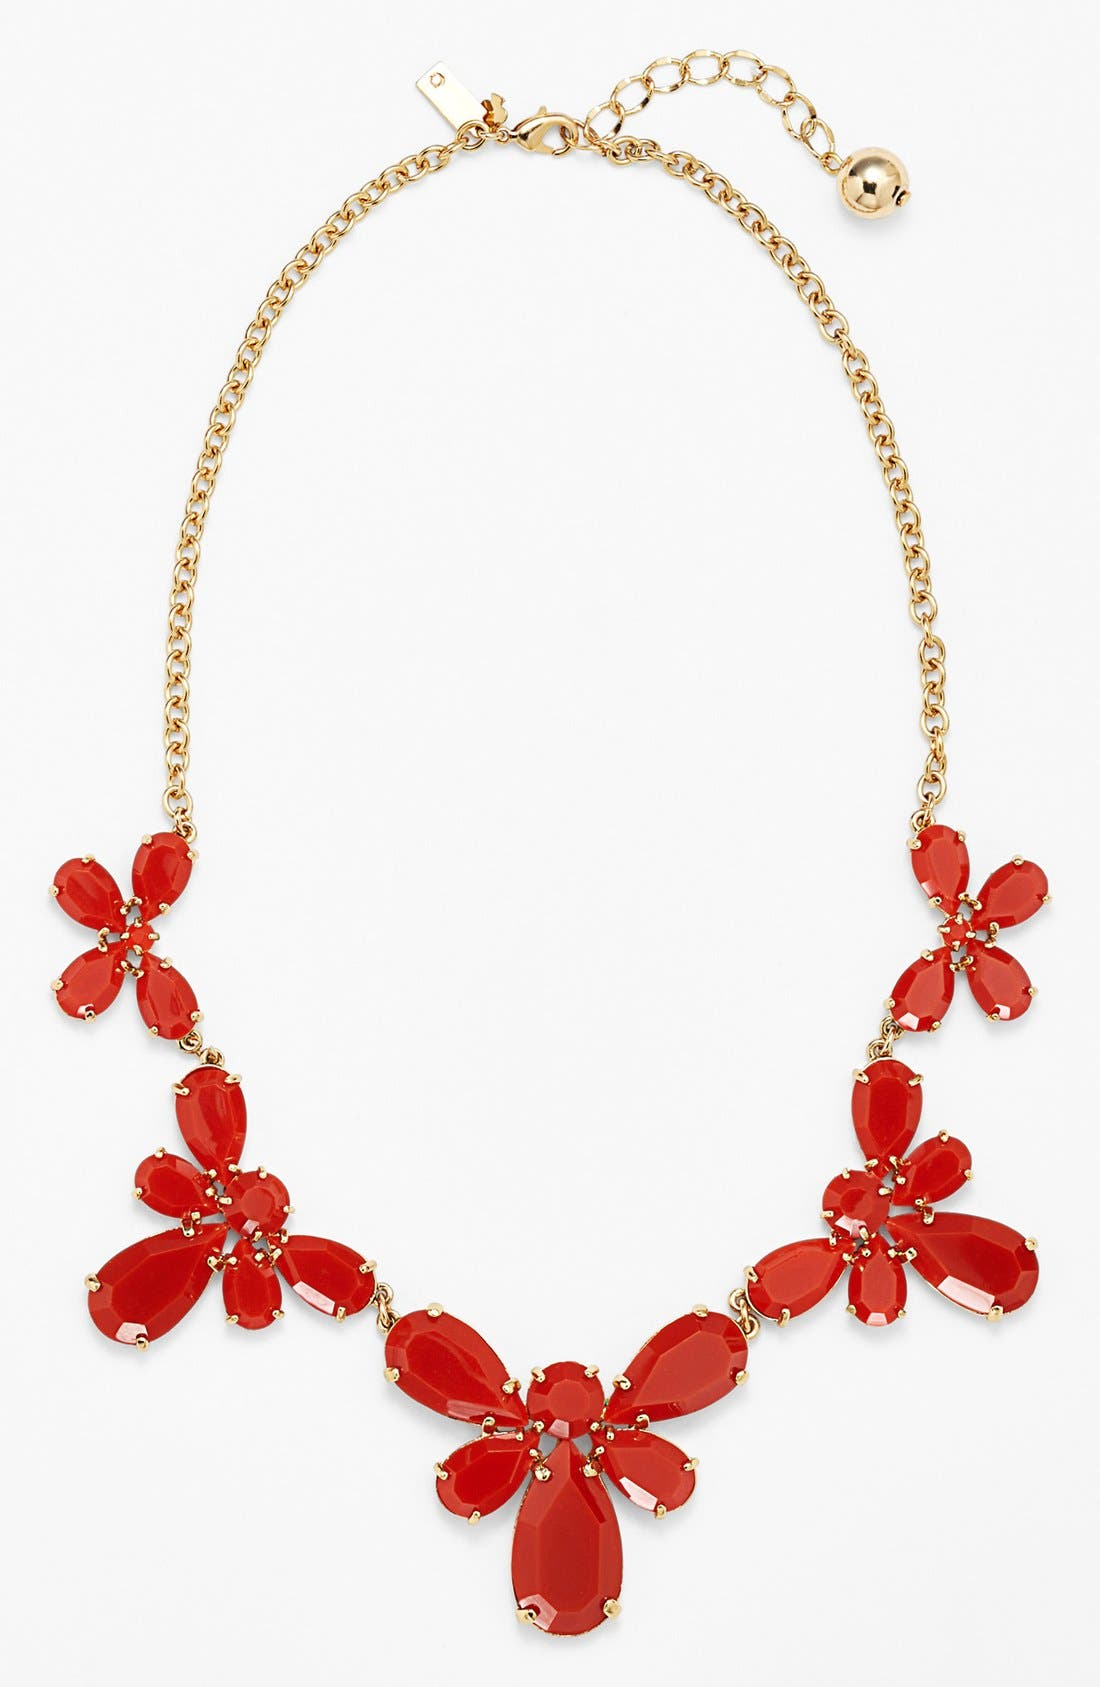 Alternate Image 1 Selected - kate spade new york 'garden path' graduated collar necklace